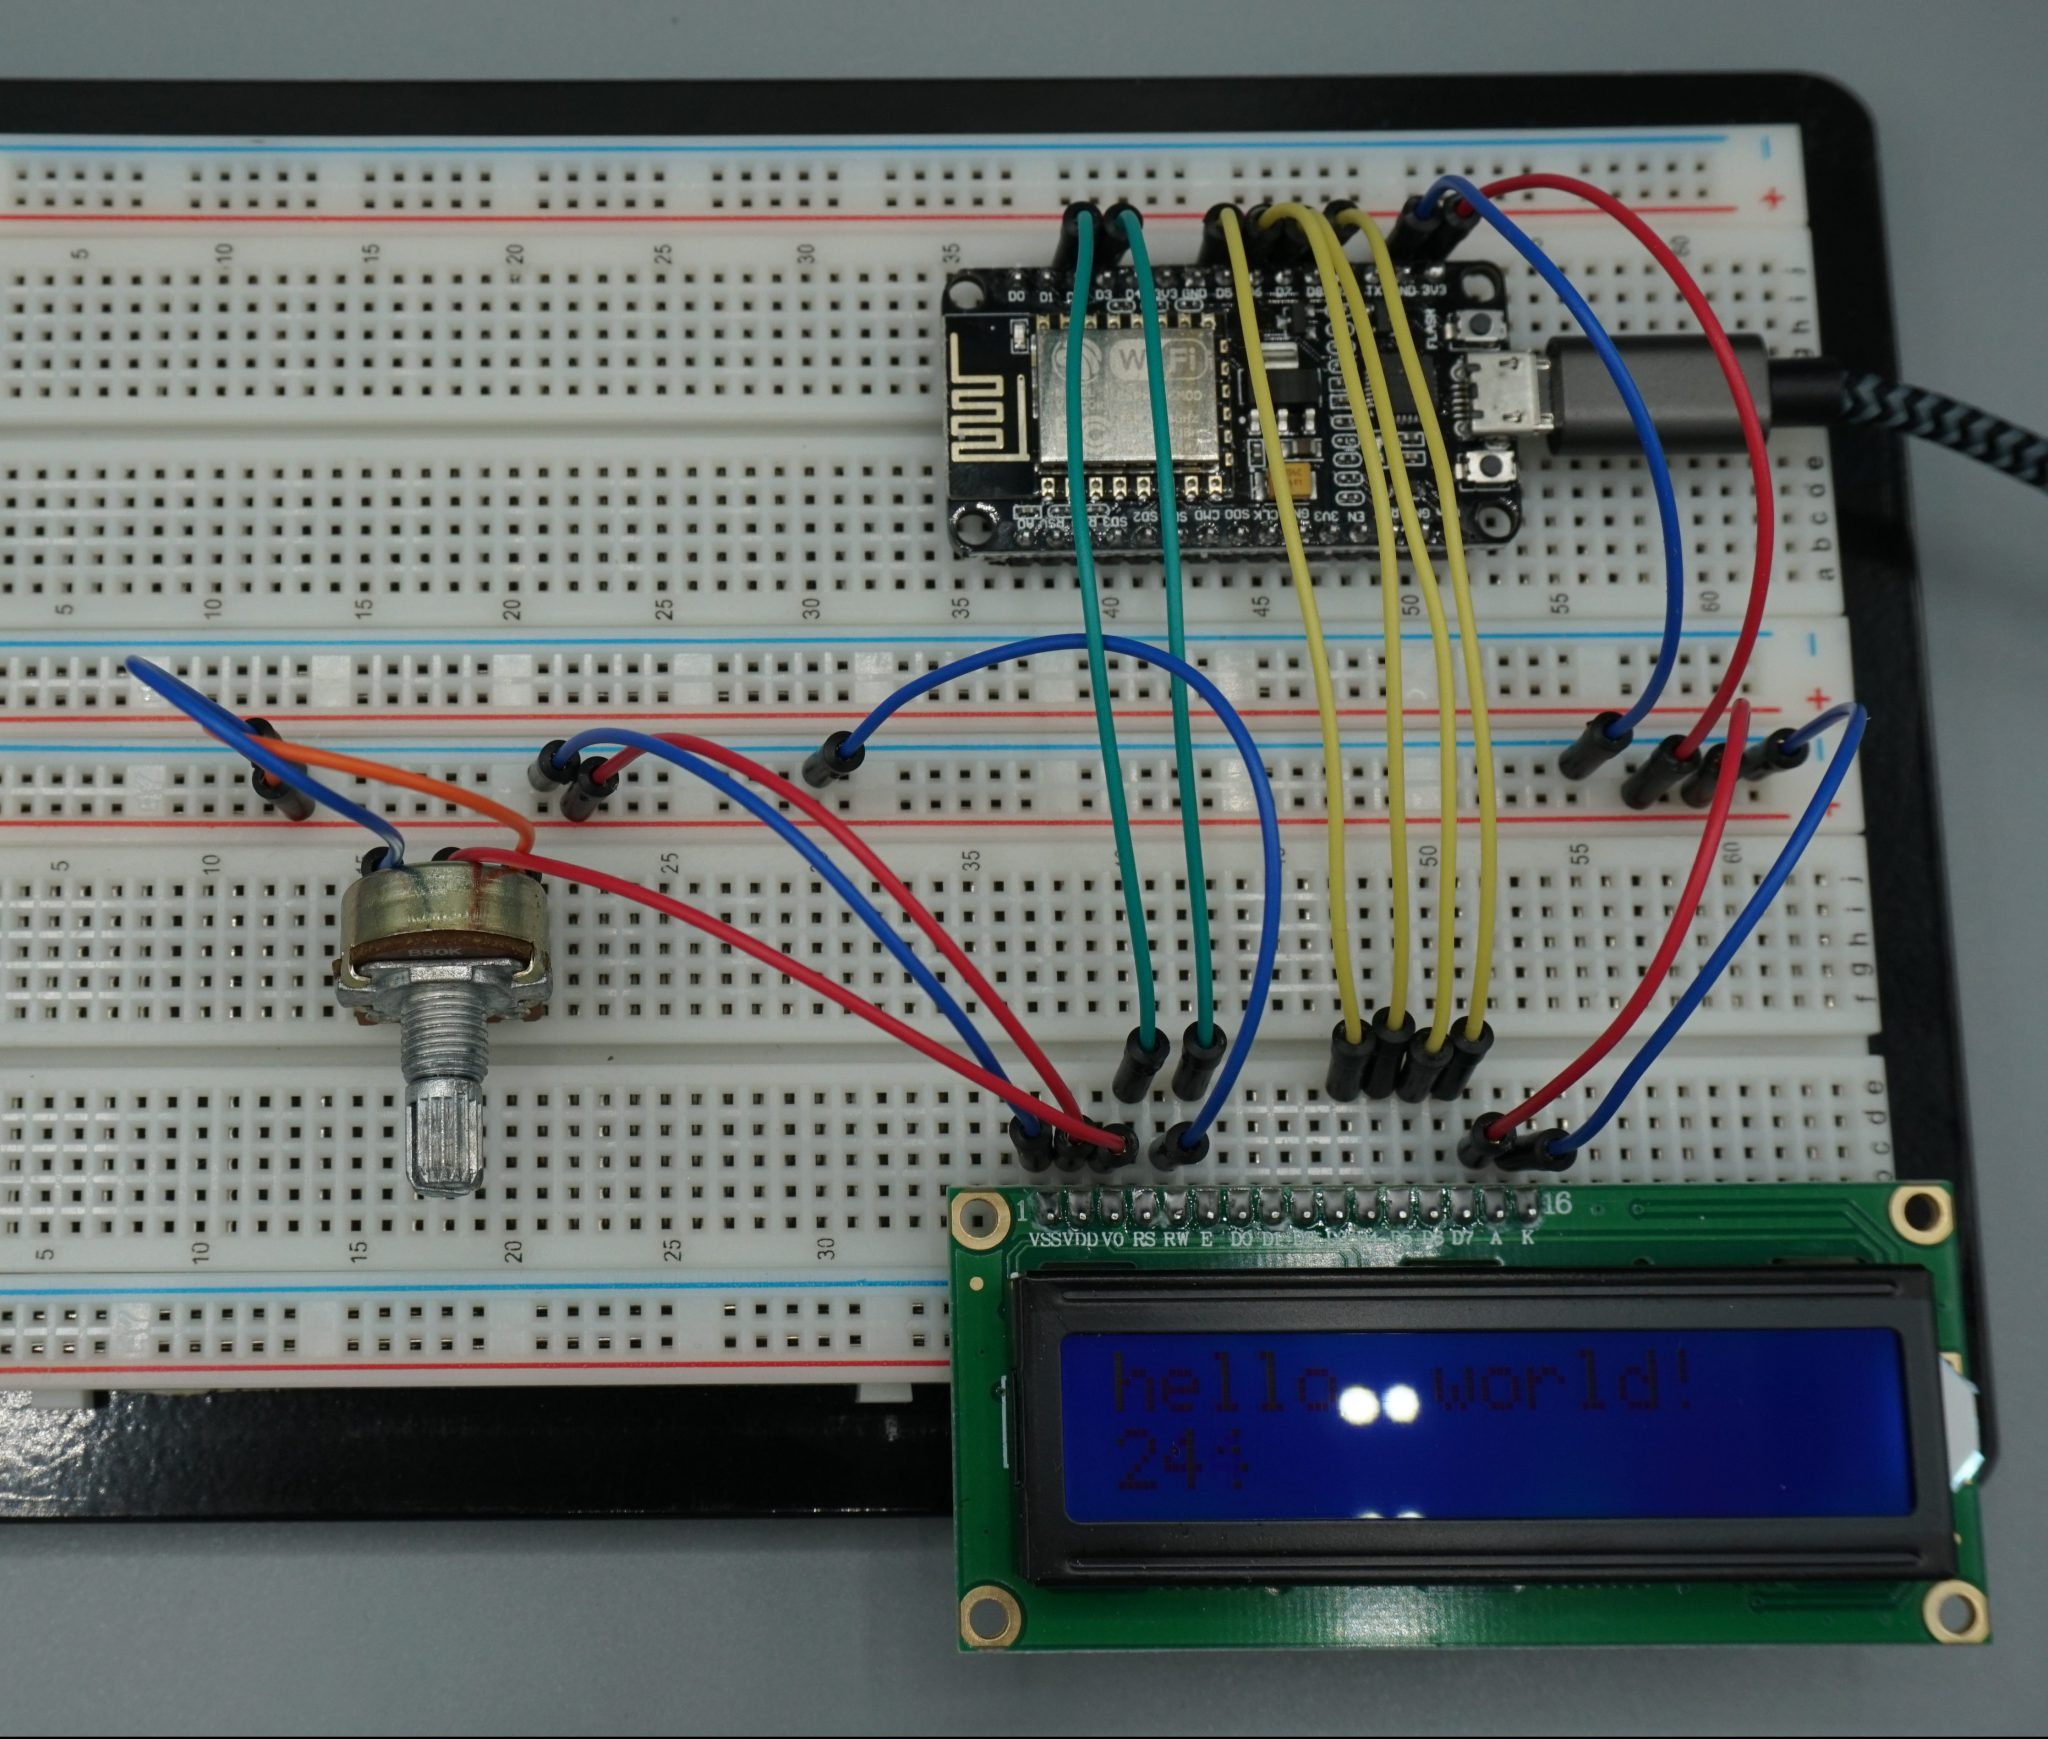 LCD example NodeMCU without I2C